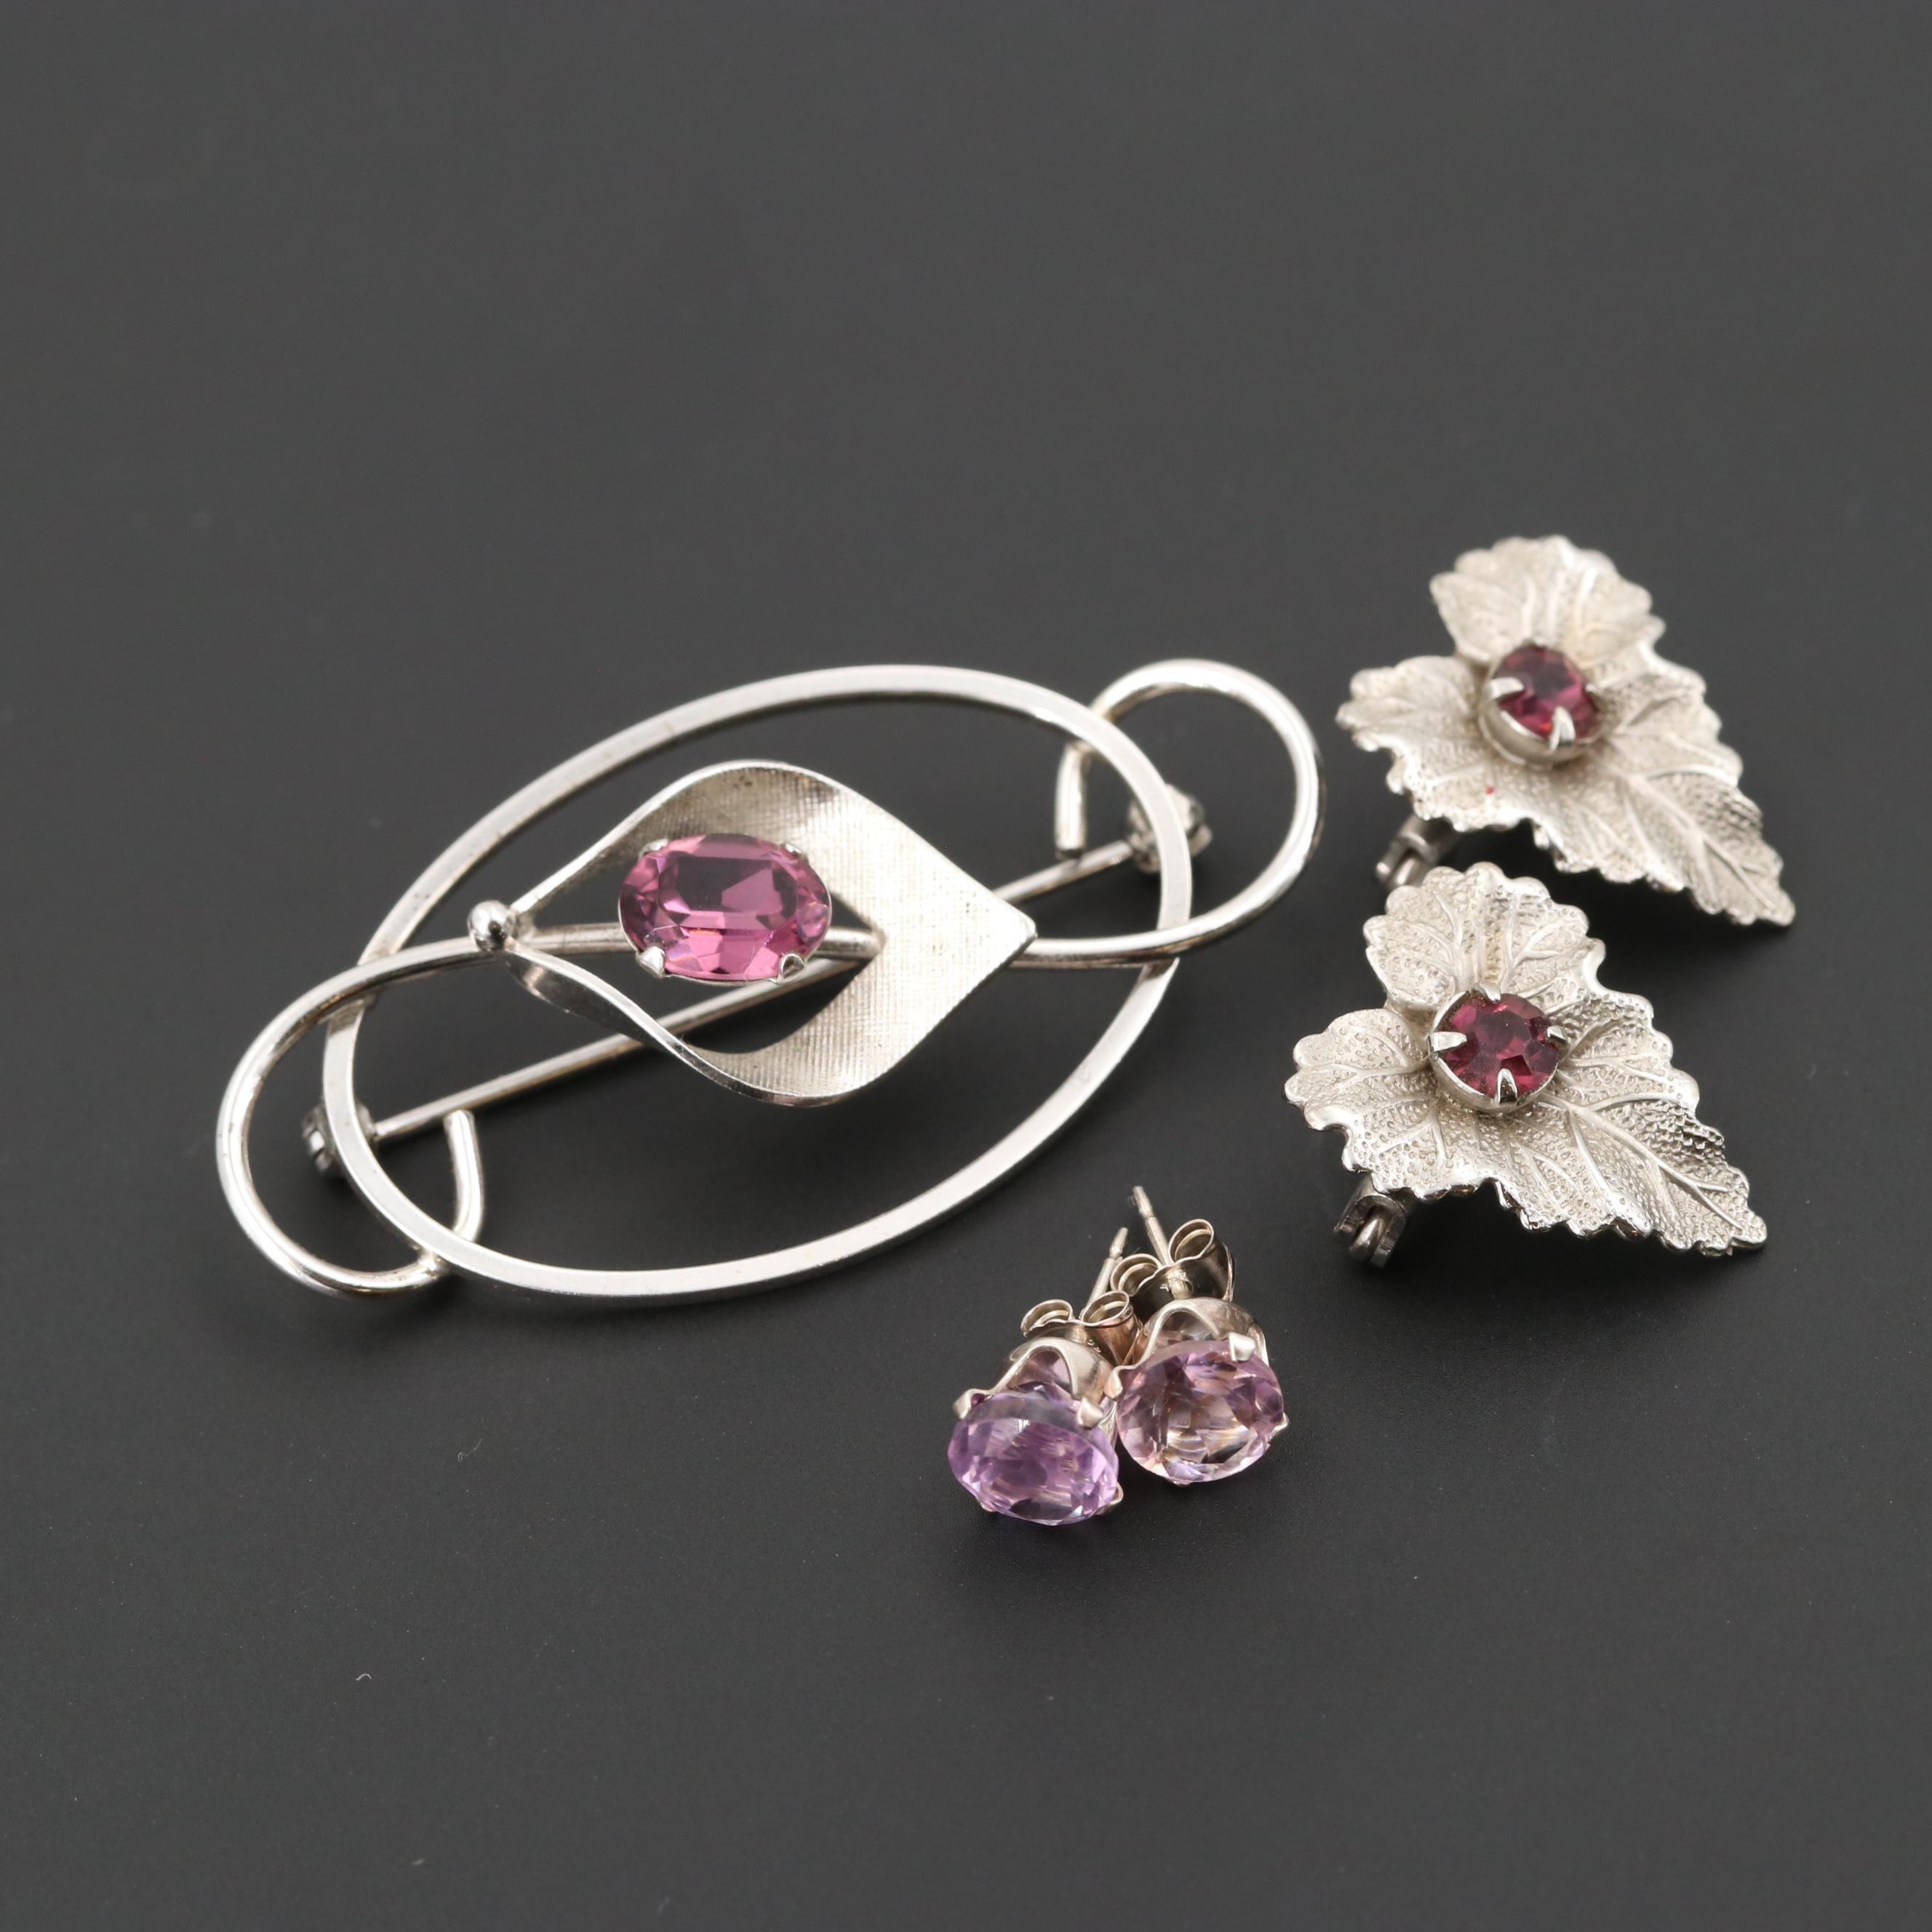 Sterling Silver Amethyst Brooches and Stud Earrings Featuring Van Dell